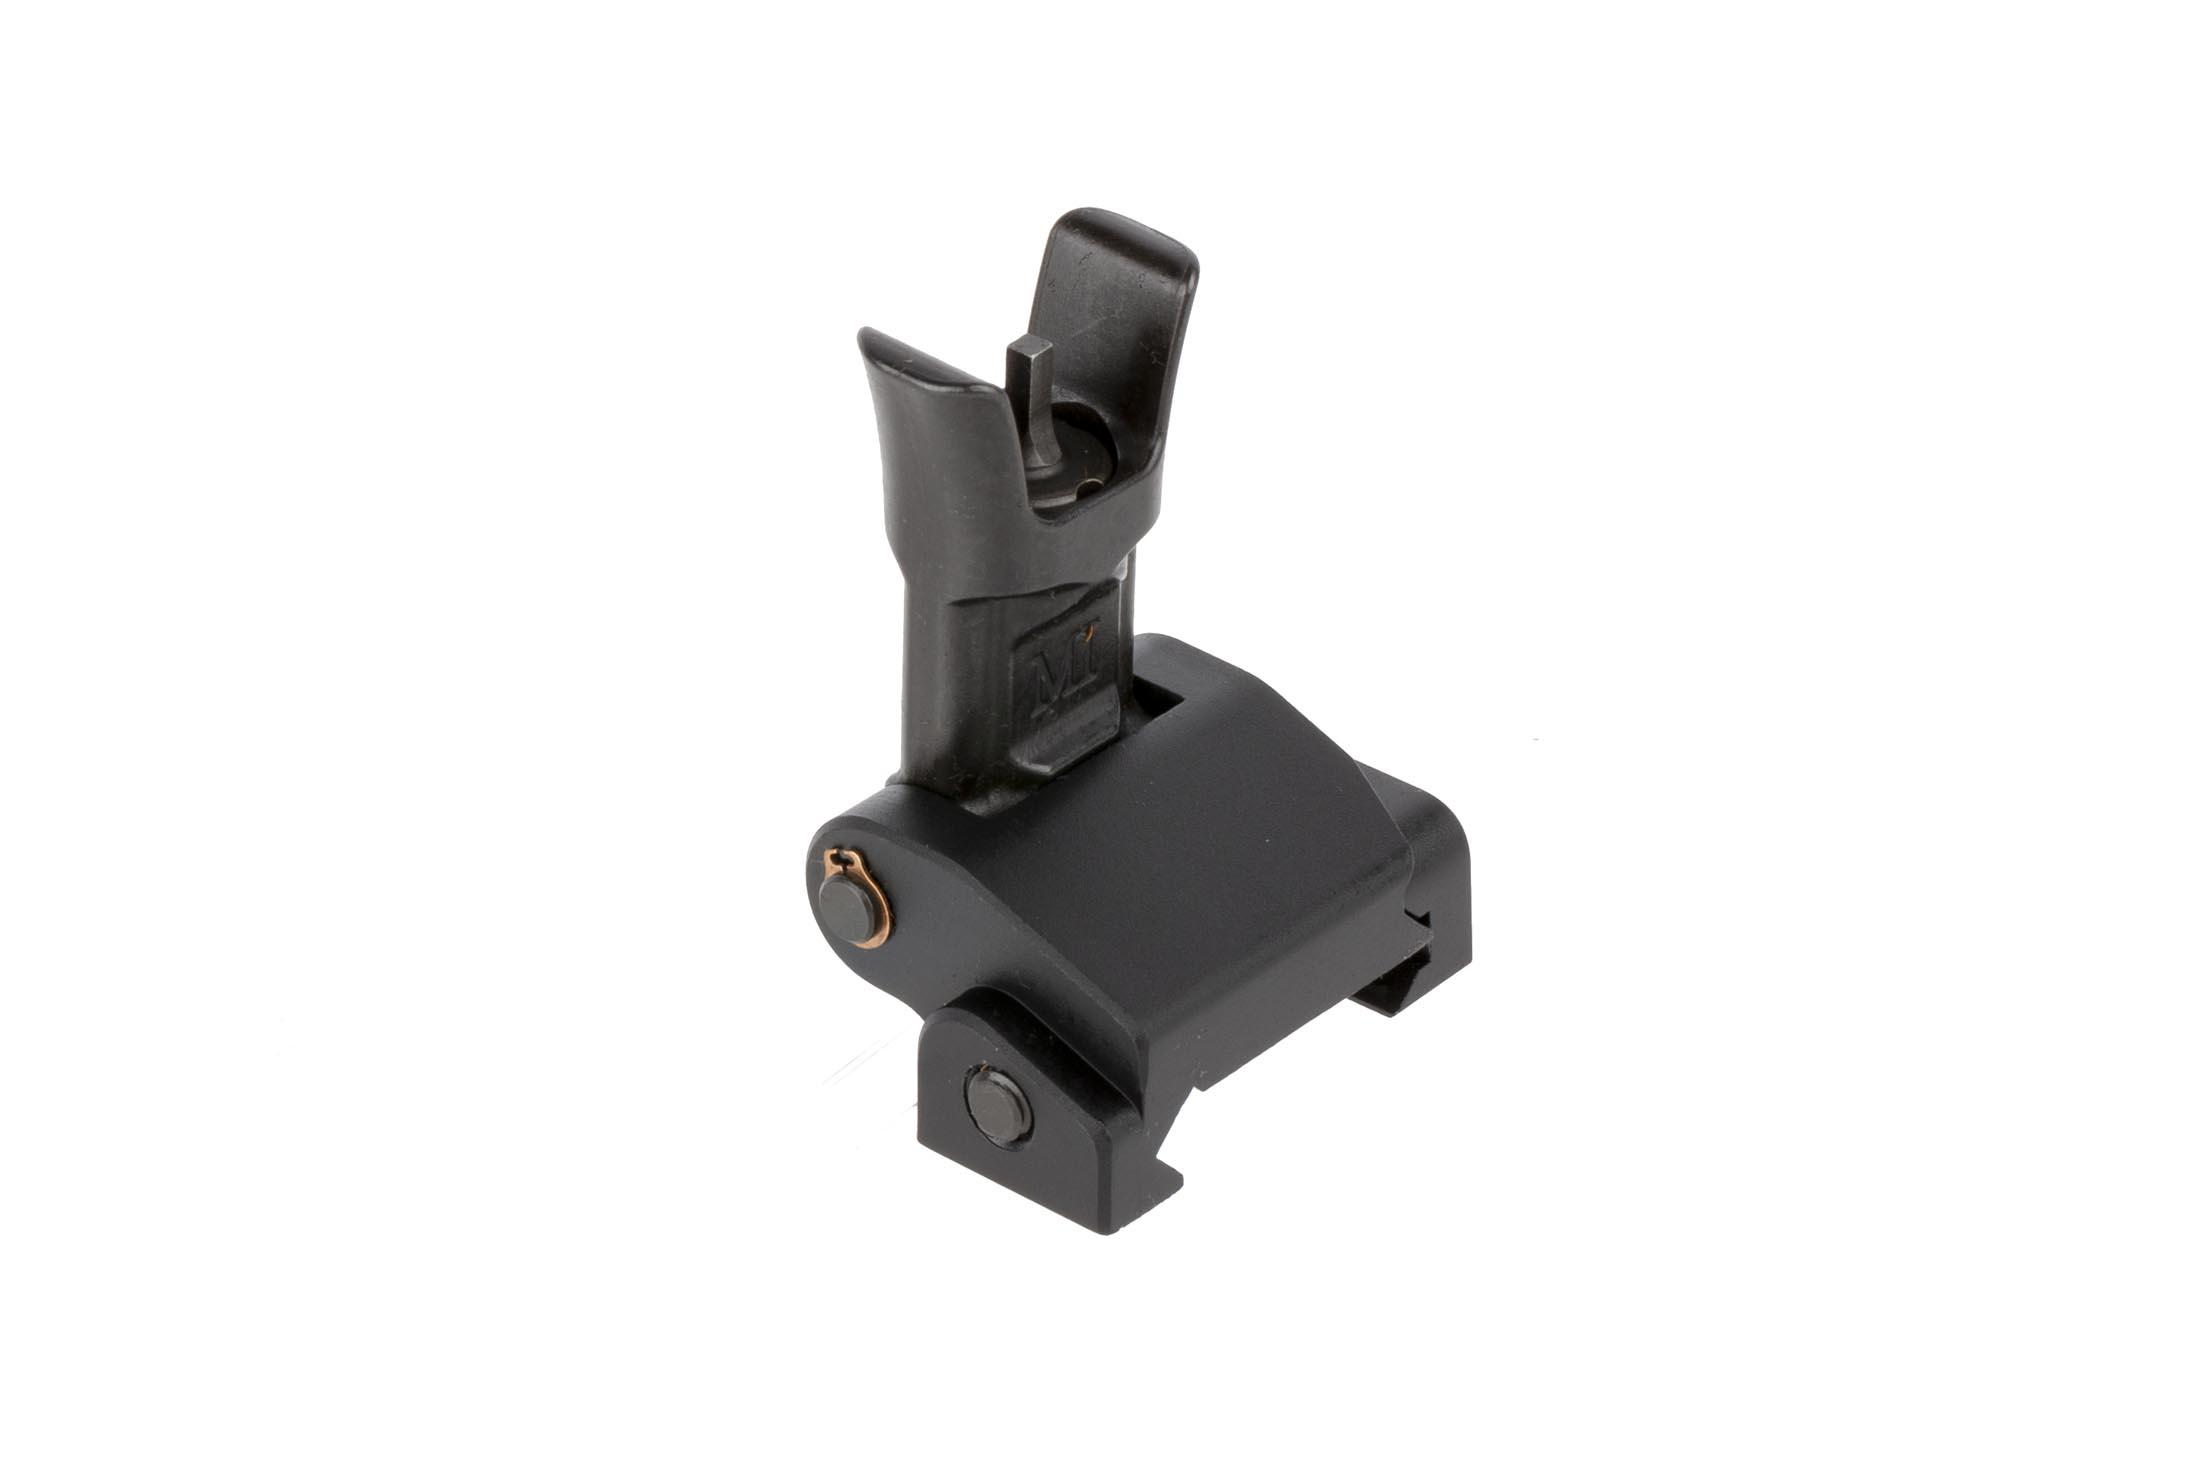 Midwest Industries Combat Rifle Front Sight is a compact folding backup sight for AR-15s machined from lightweight 6061 aluminum